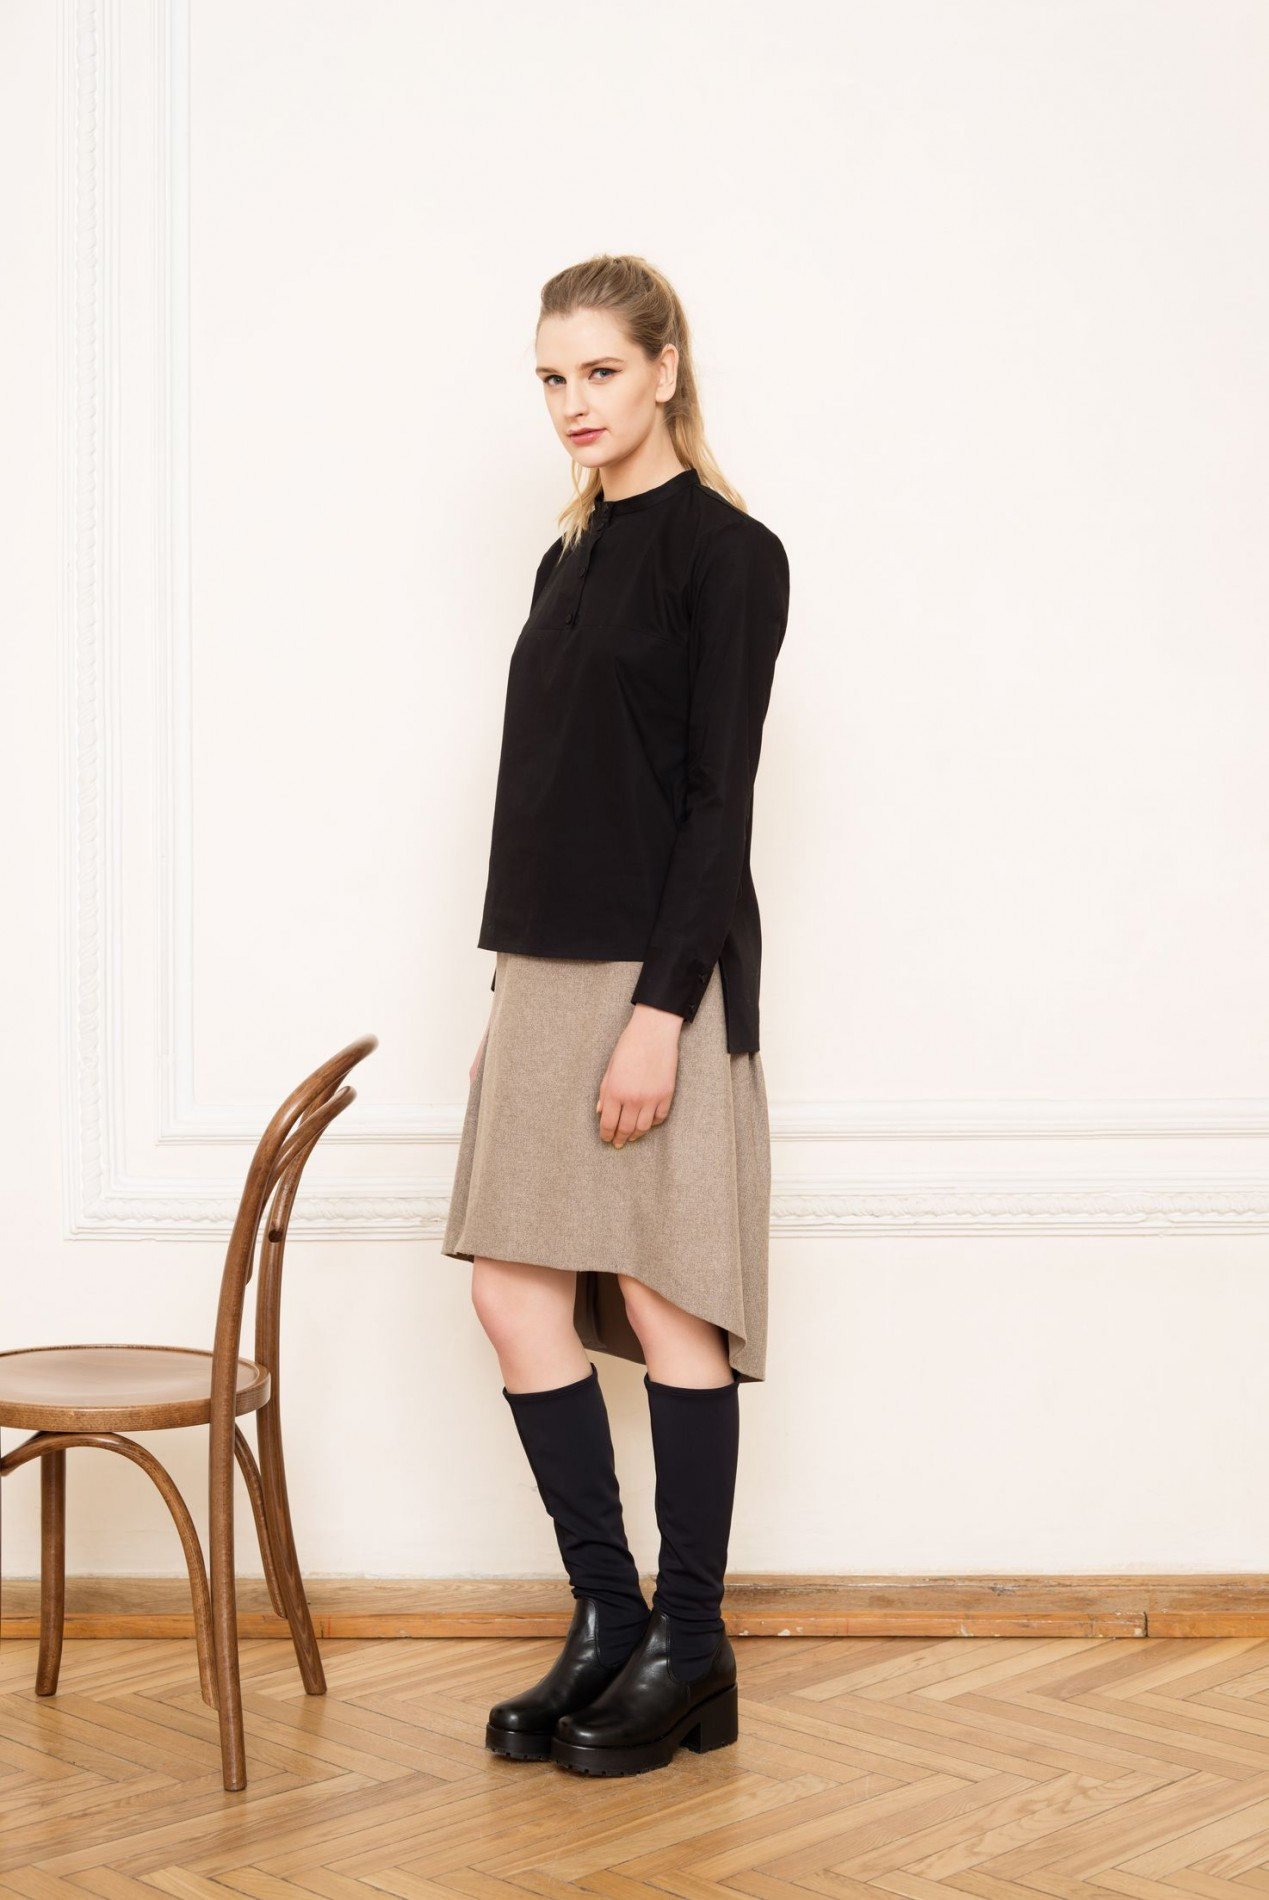 RILA Shirt and ALPS Elegant Skirt